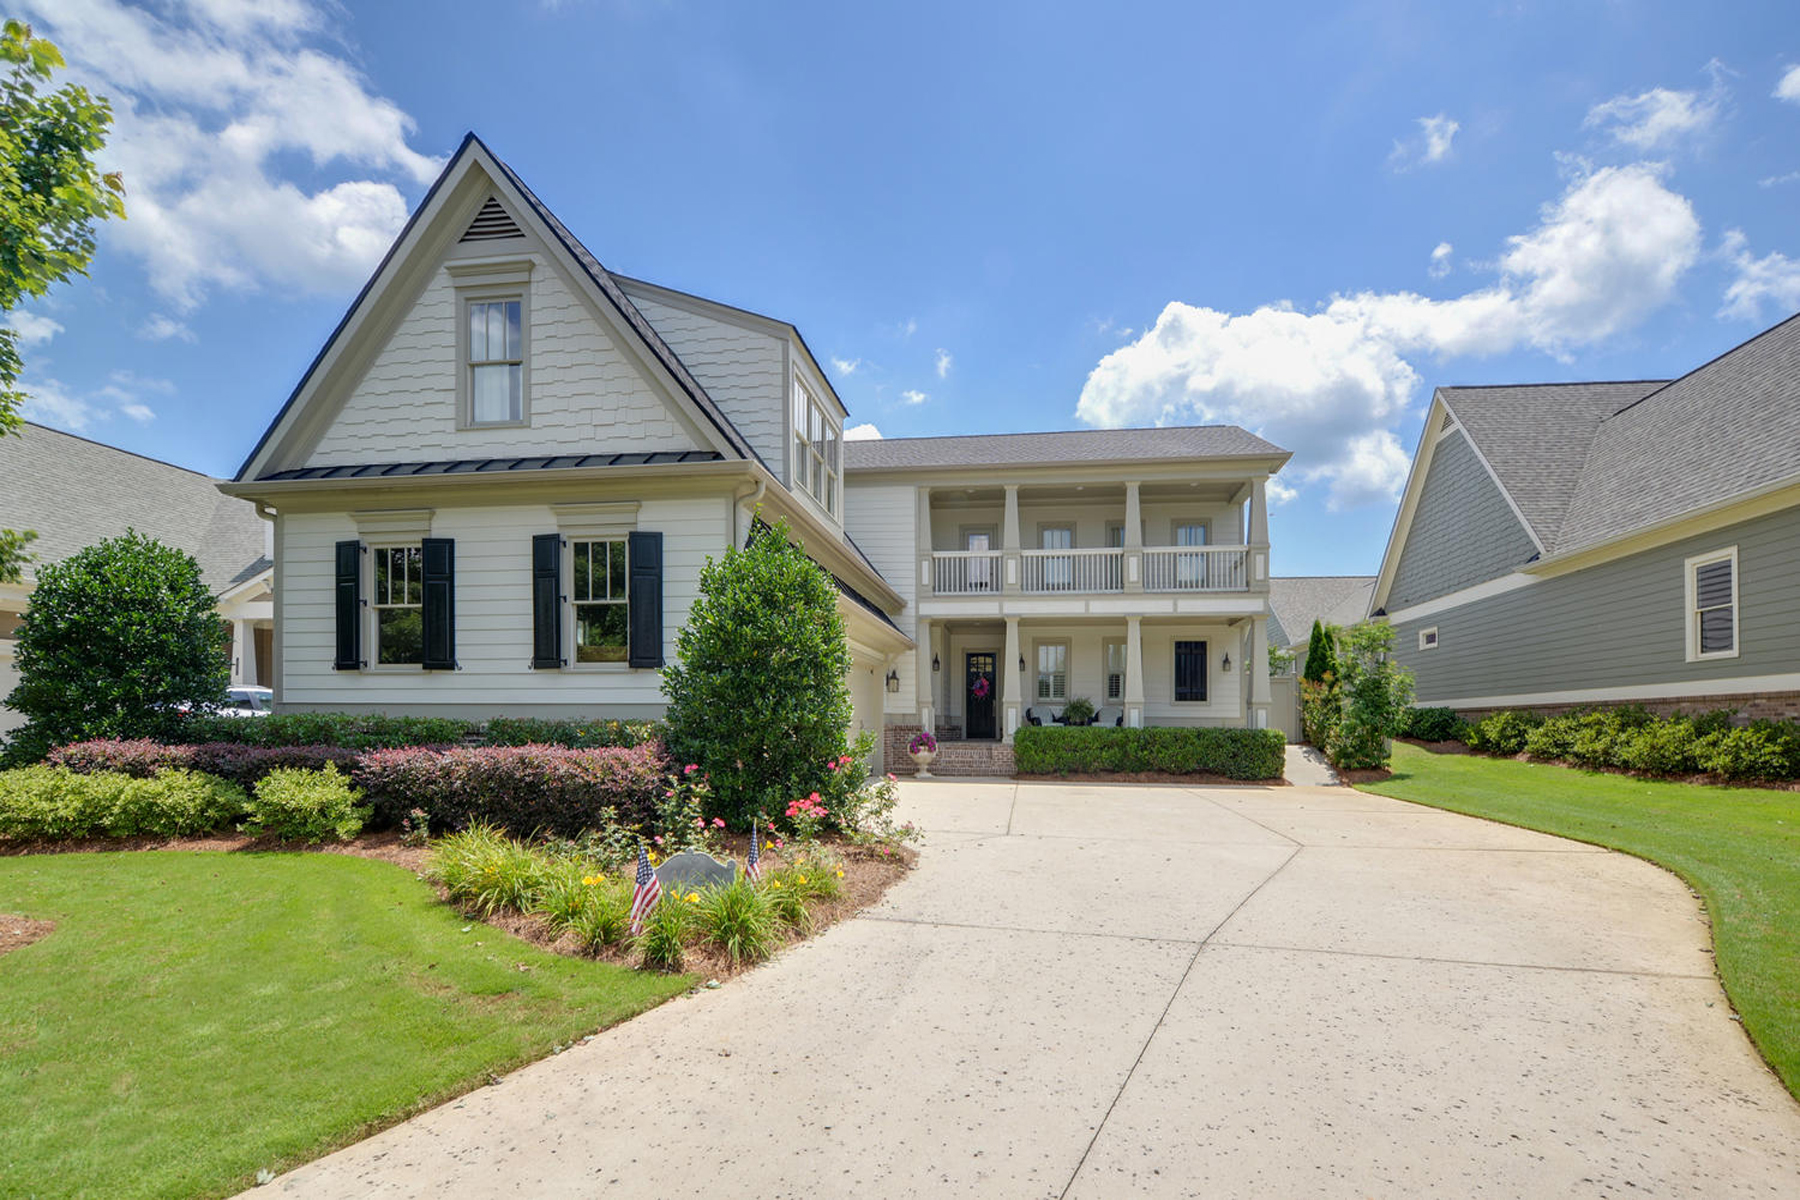 واحد منزل الأسرة للـ Sale في Courtyard Style Home In The Georgia Club With Pool On Oconee County Section 1464 Greenleffe Drive Statham, Georgia, 30666 United States